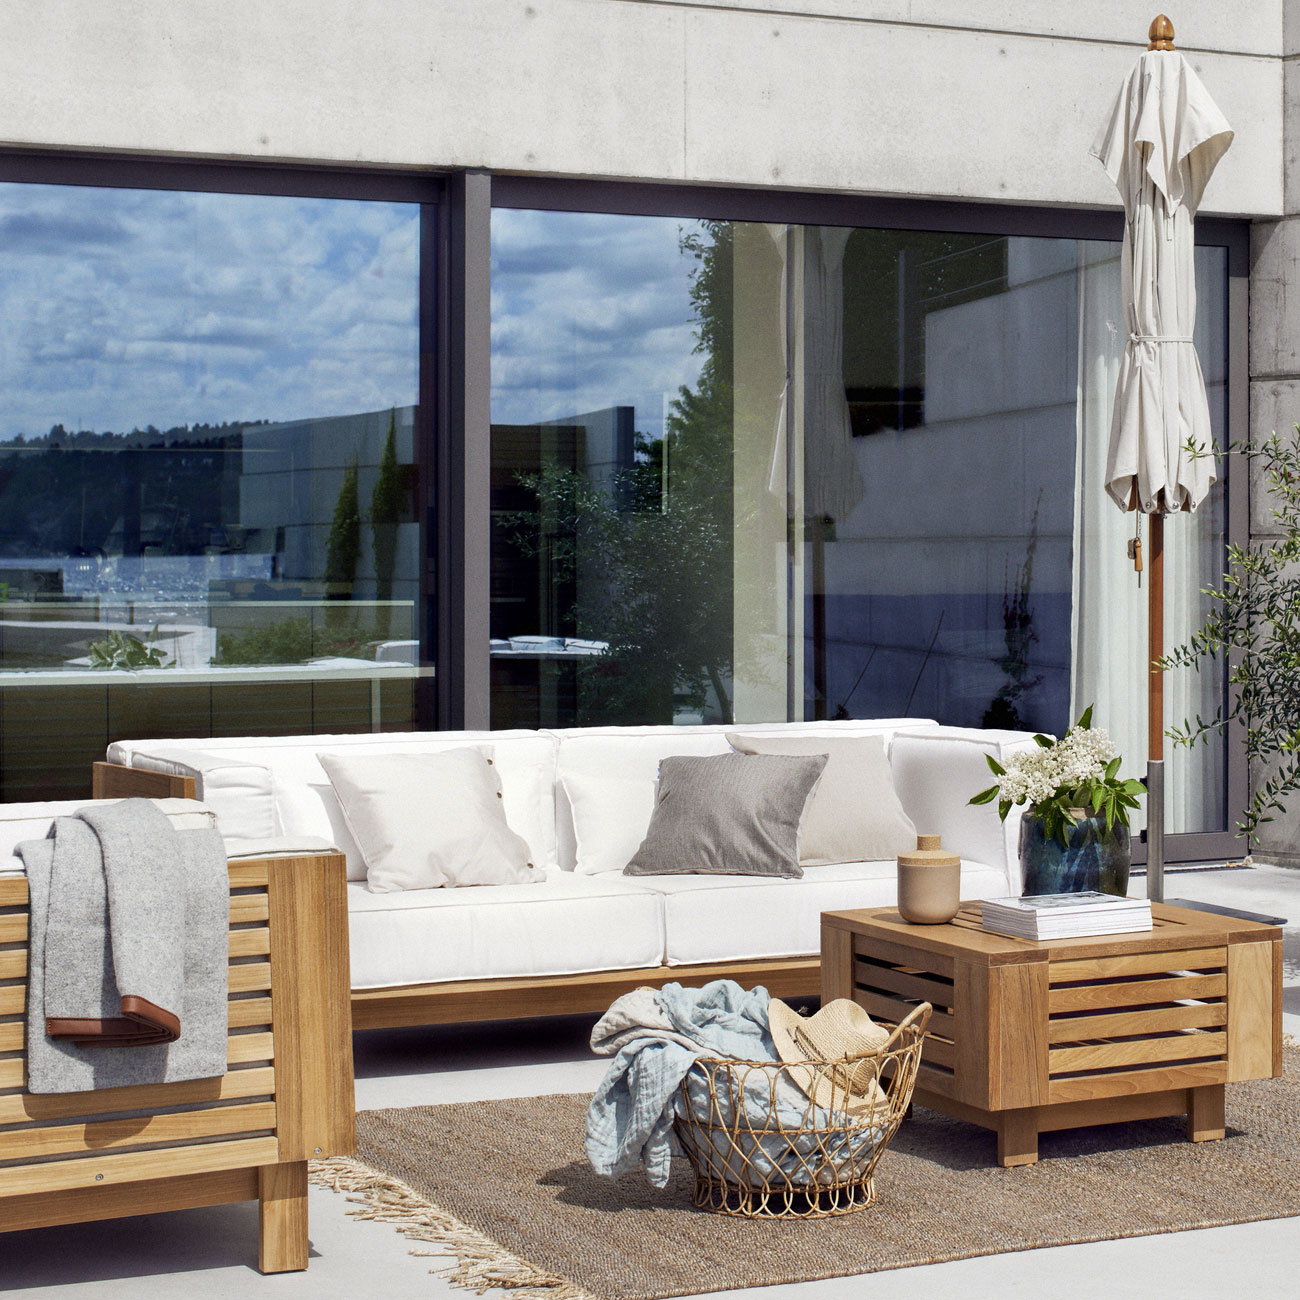 Skargaarden skanor 3 seater sofa luxury outdoor living for Luxury outdoor living